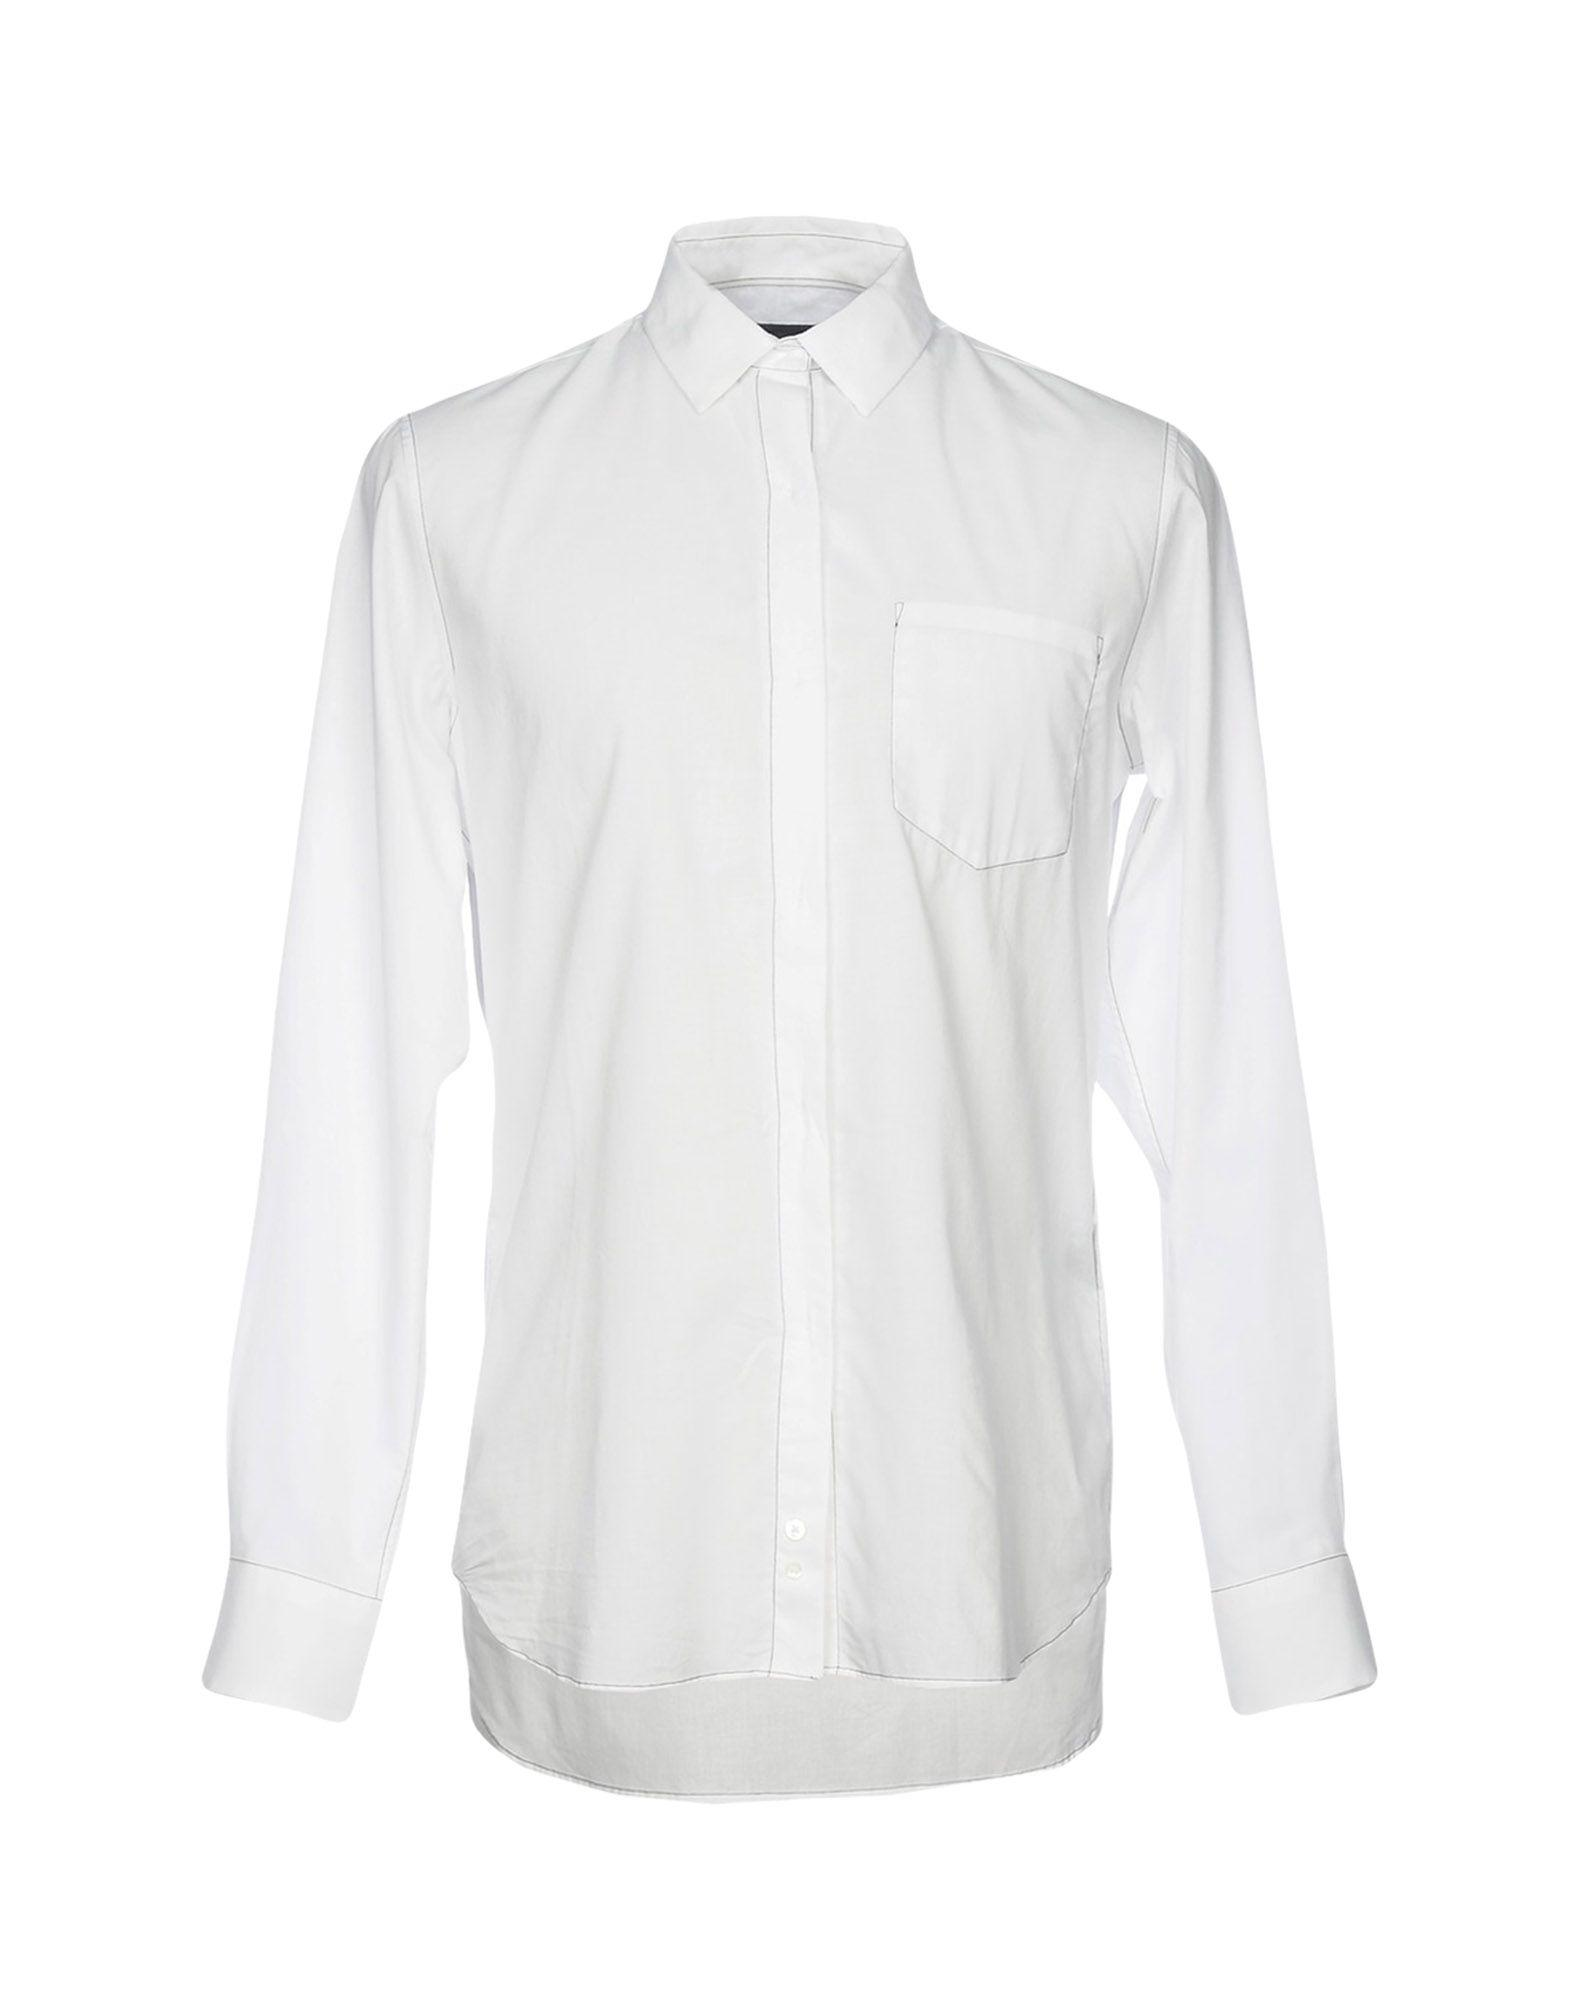 For Sale Free Shipping Ann Demeulemeester classic cotton shirt - White Discount Get Authentic Discount Very Cheap Free Shipping 100% Original zZQHag